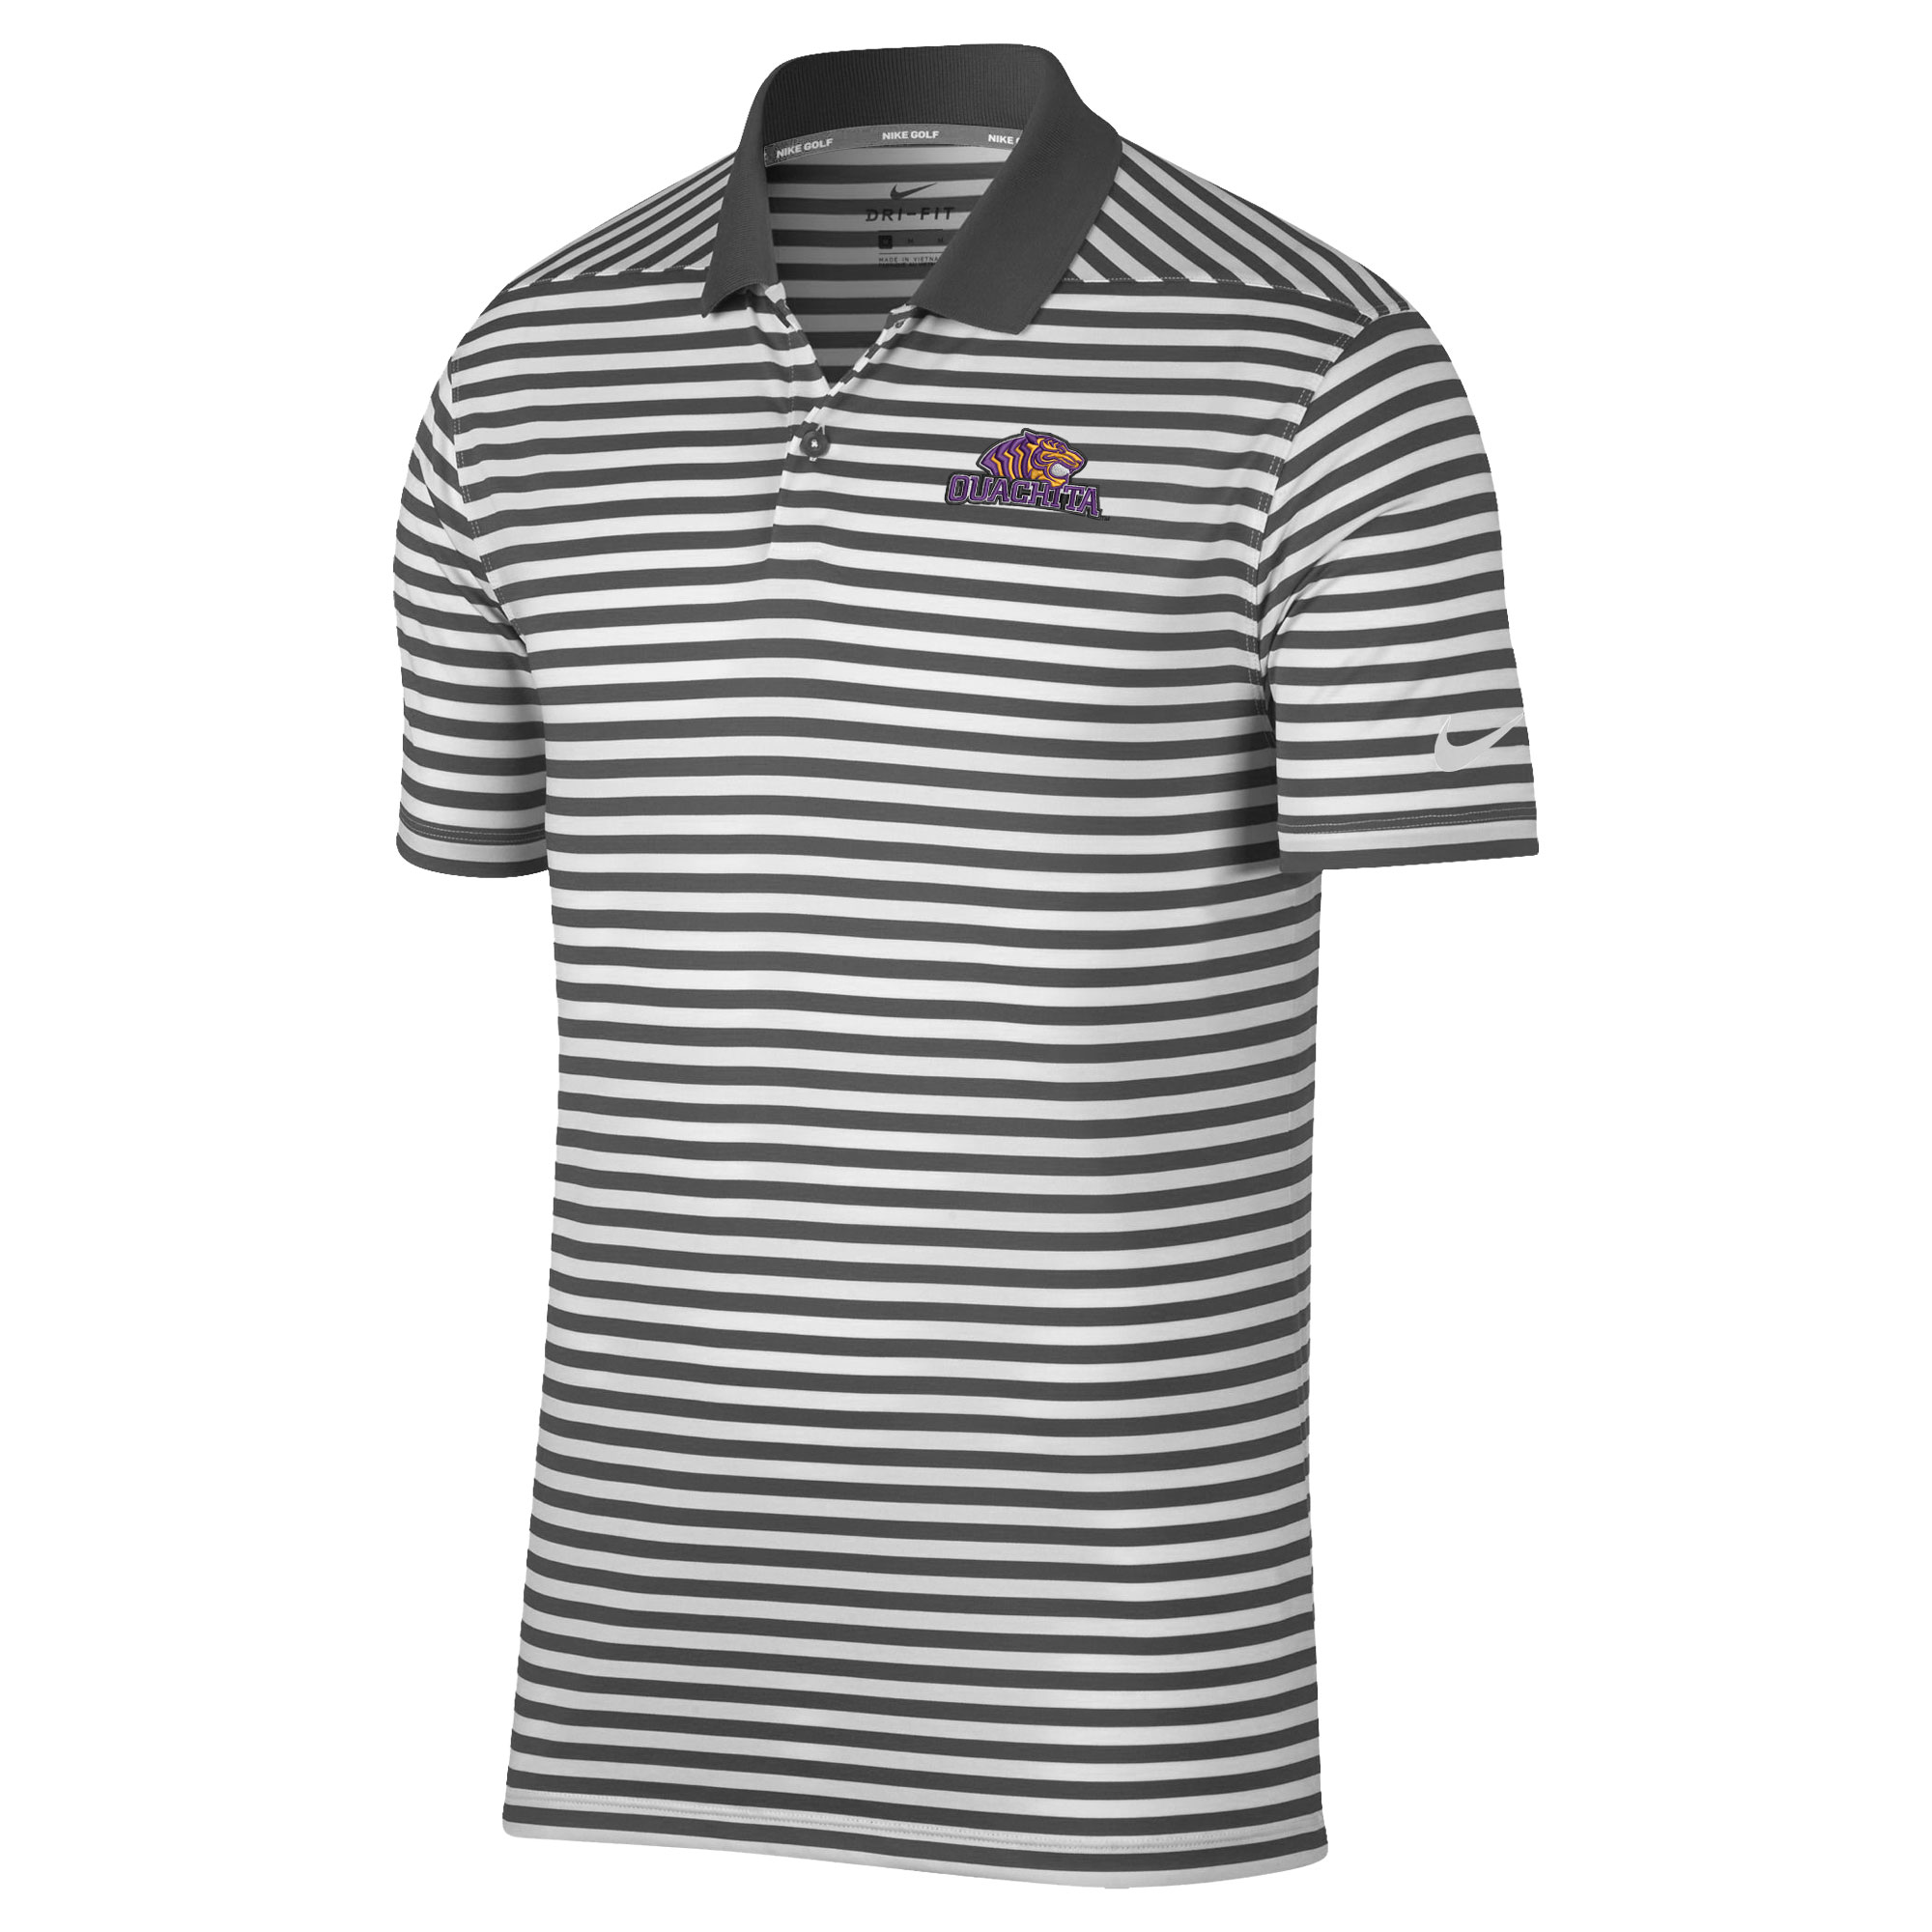 NIKE OUACHITA VICTORY STRIPE POLO